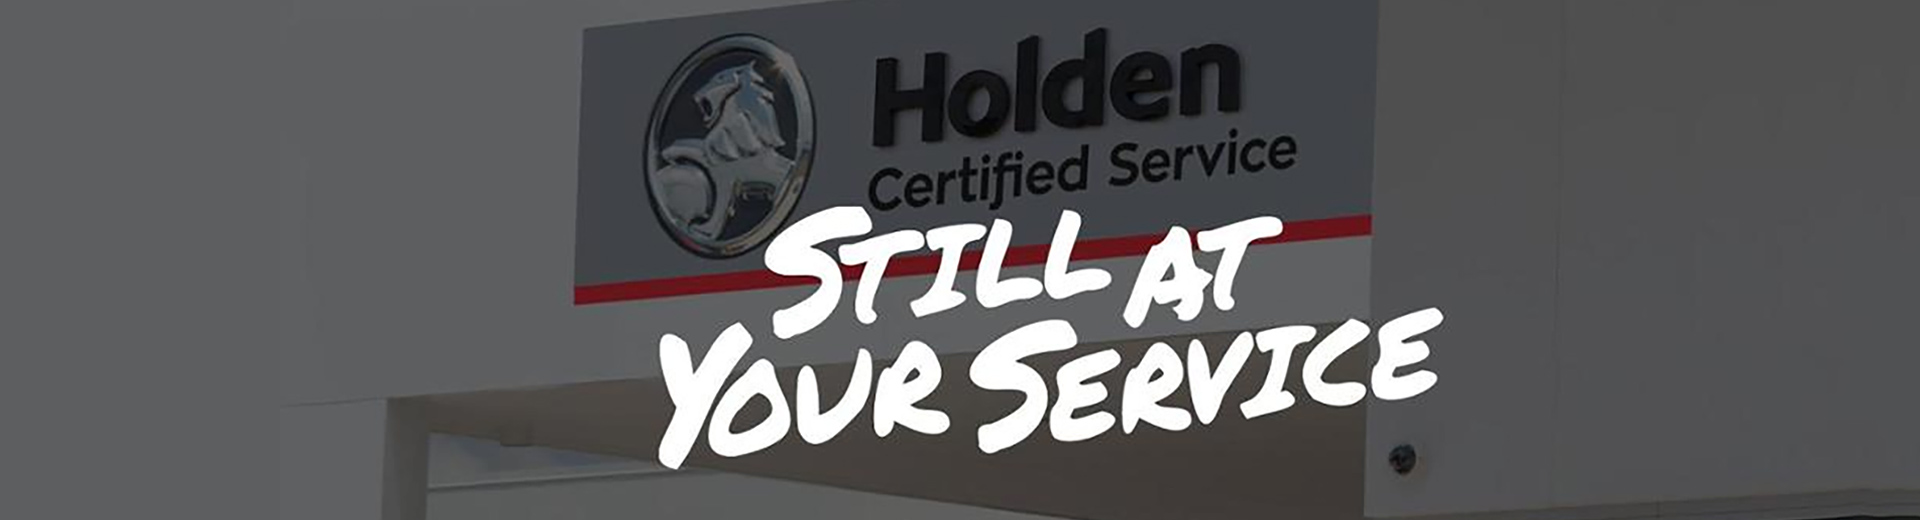 Nowra Ciy Holden - Still at Your Service